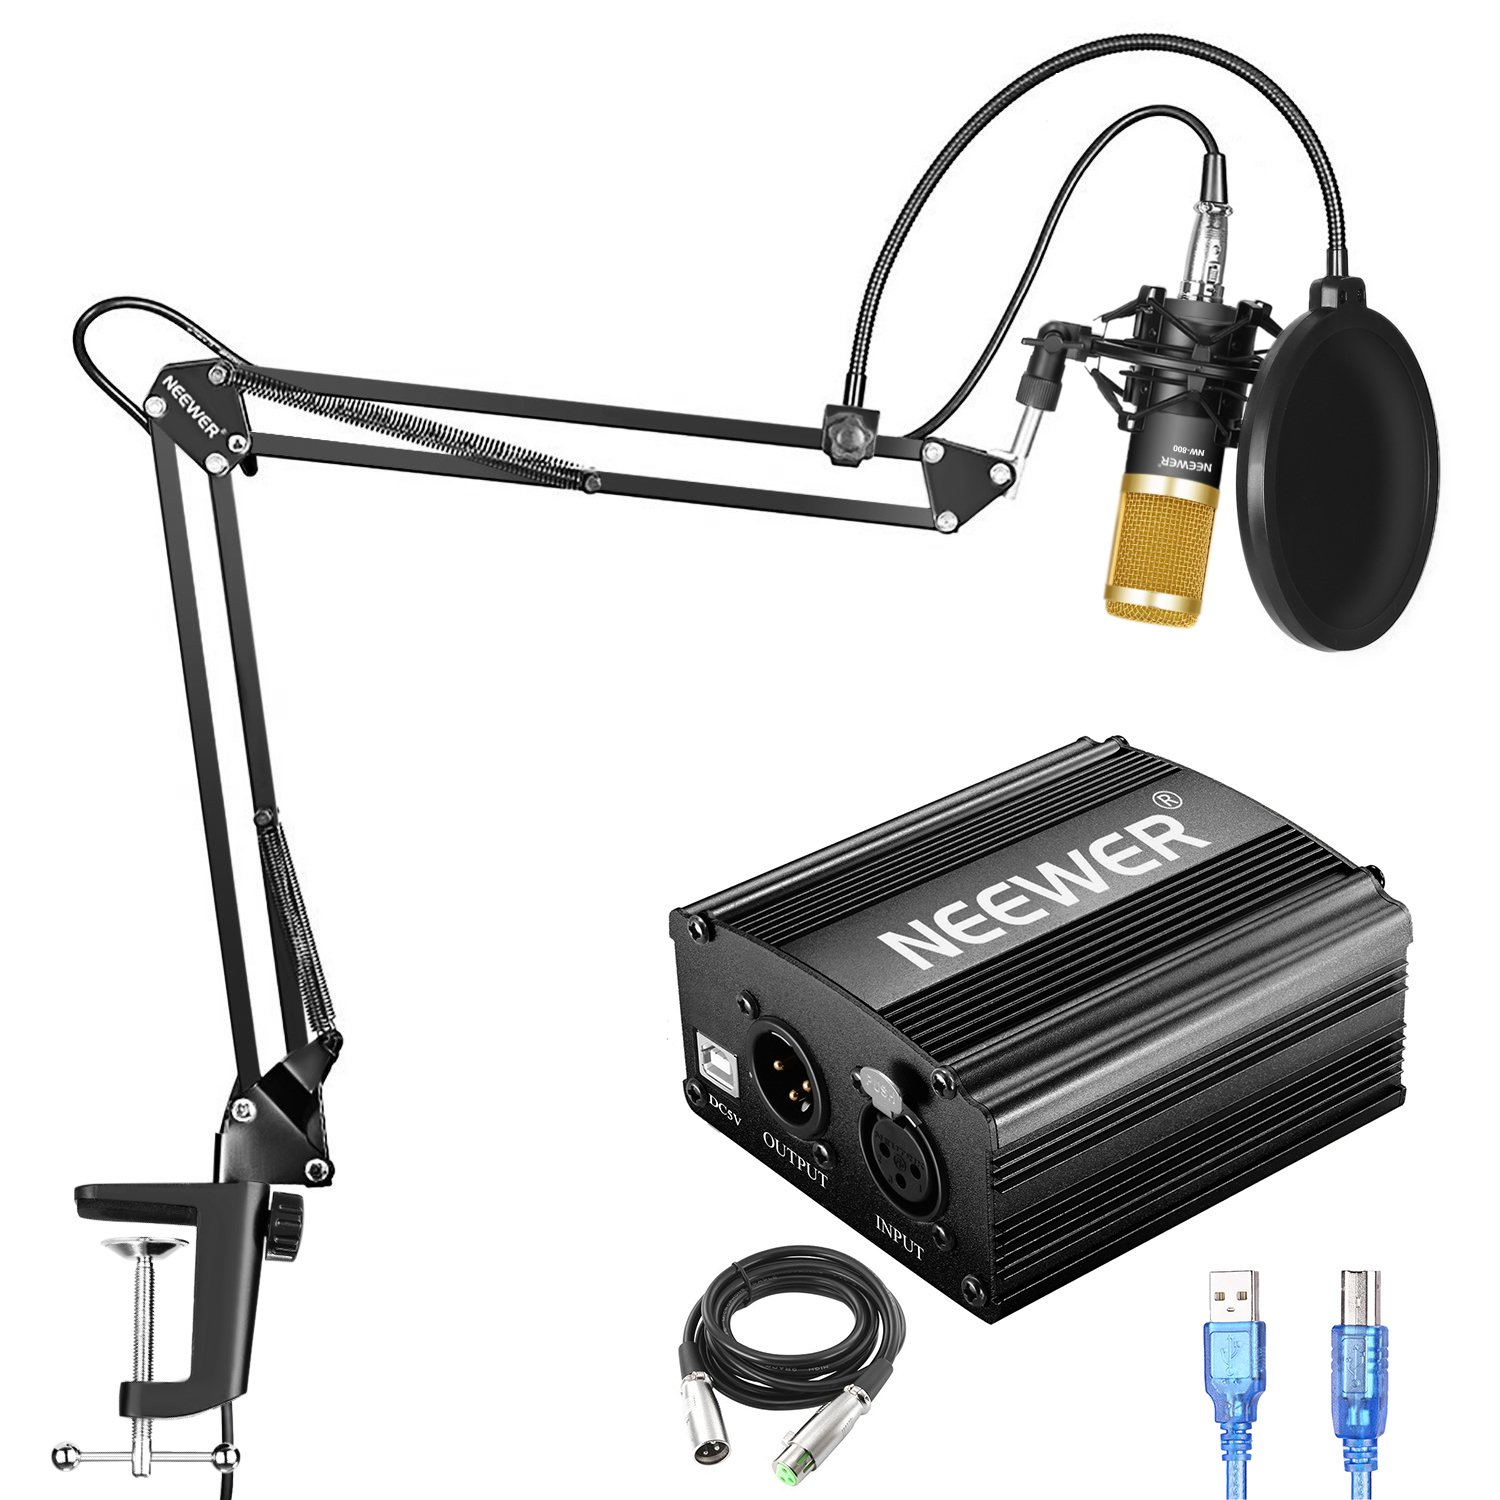 Neewer NW-800 Condenser Microphone Kit with USB 48V Phantom Power Supply, NW-35 Suspension Arm Stand, Shock Mount, Pop Filter for Home Studio Recording Broadcast YouTube Live Periscope(Black and Gold) by Neewer